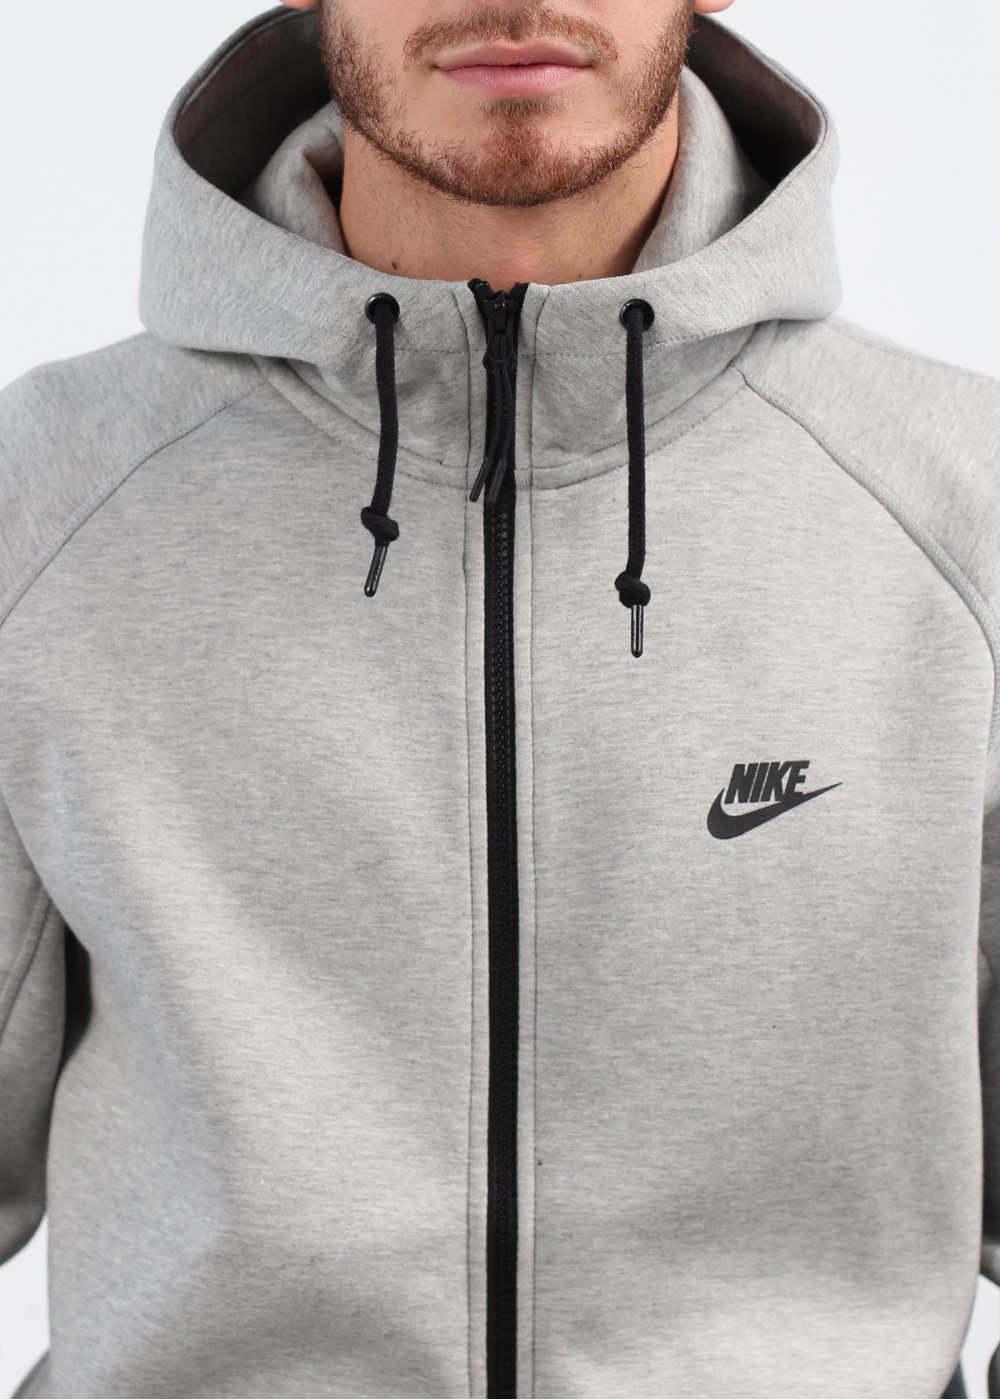 Nike Tech Fleece Hooded Track Jacket - Grey 87aaa3a9e